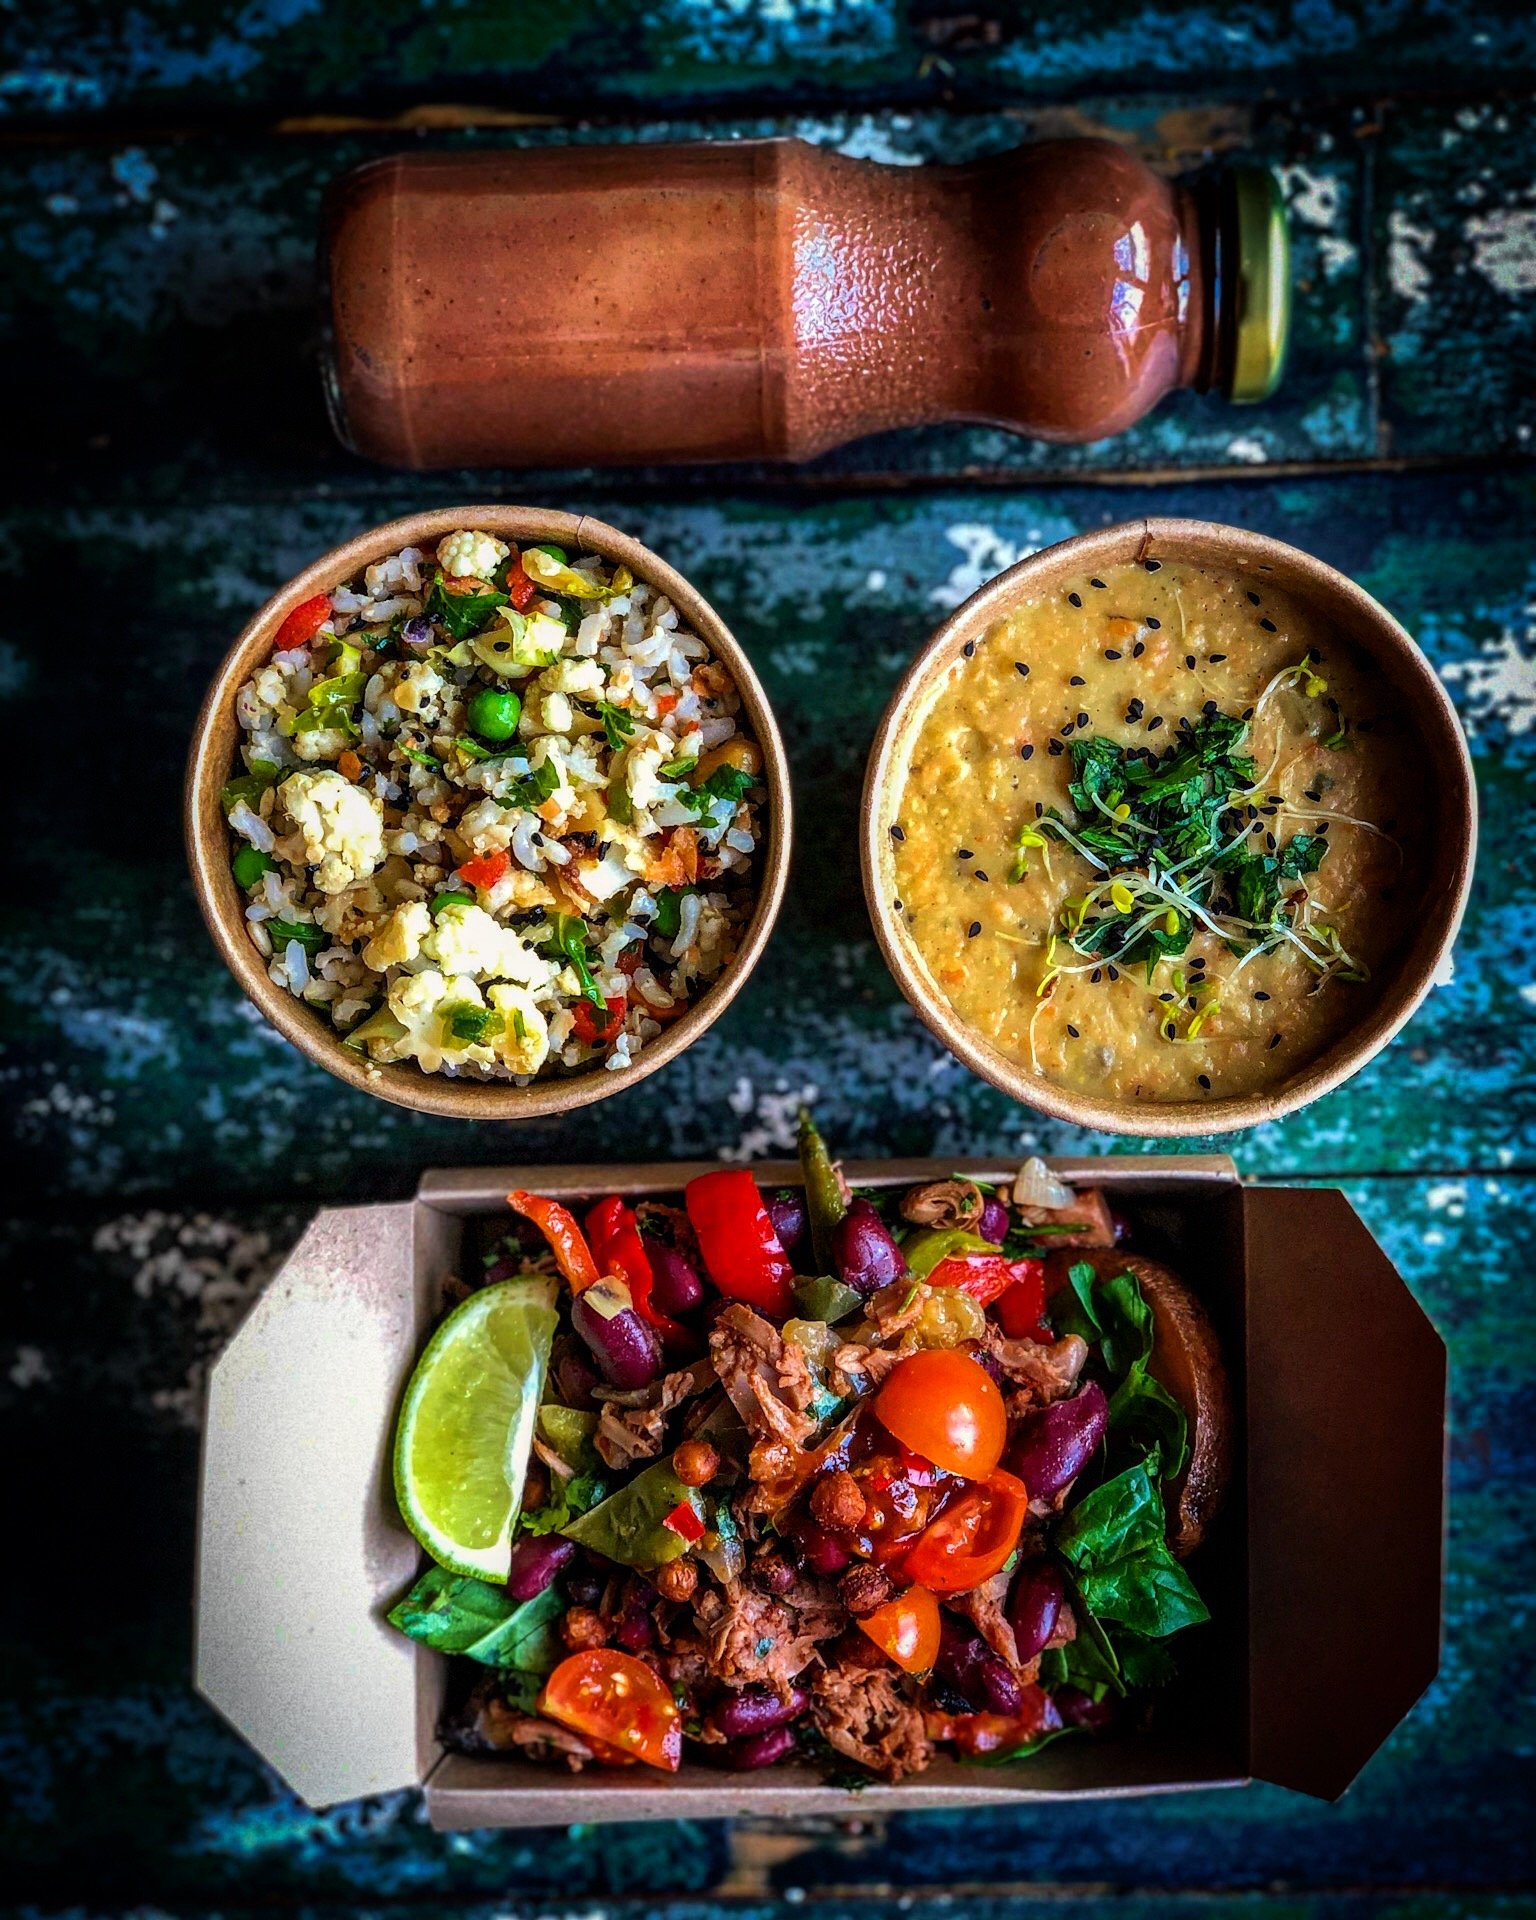 Salted Cacao Smoothie. Dahl Soup. Rice Salad. Roasted BBQ Jackfruit Bowl